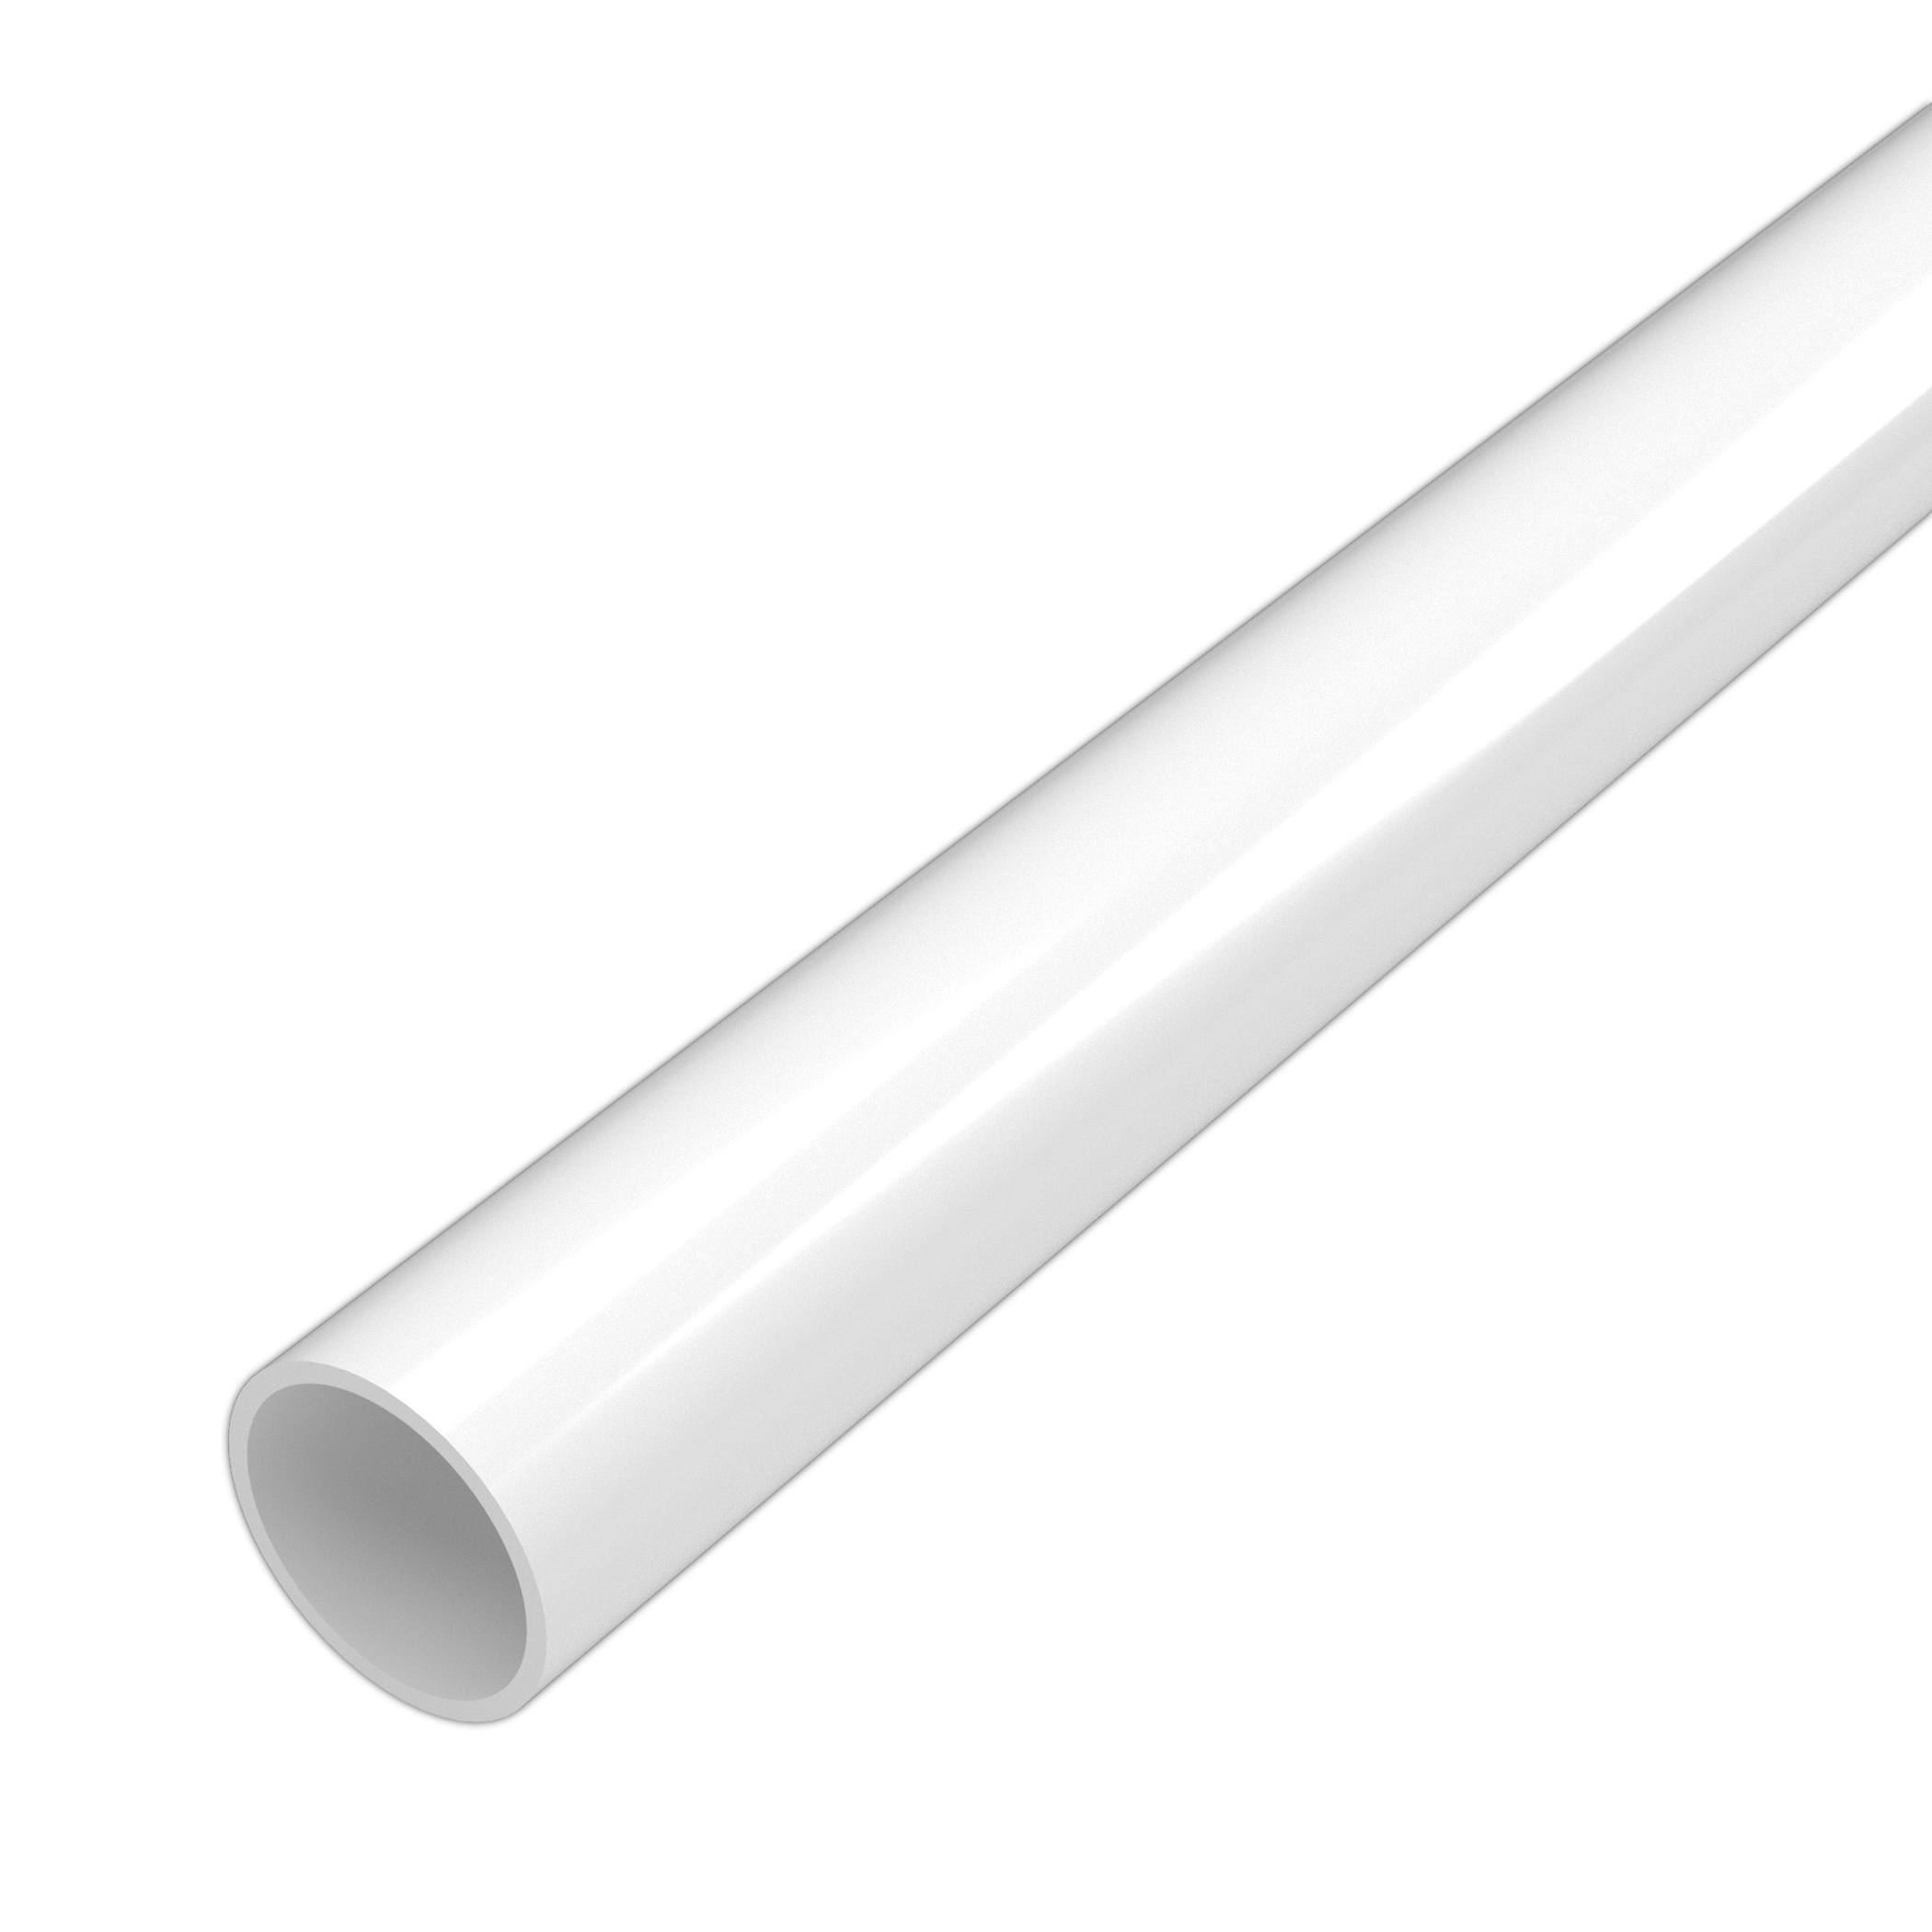 PVC Pipe, 1/2 in x 20 ft, 315 psi